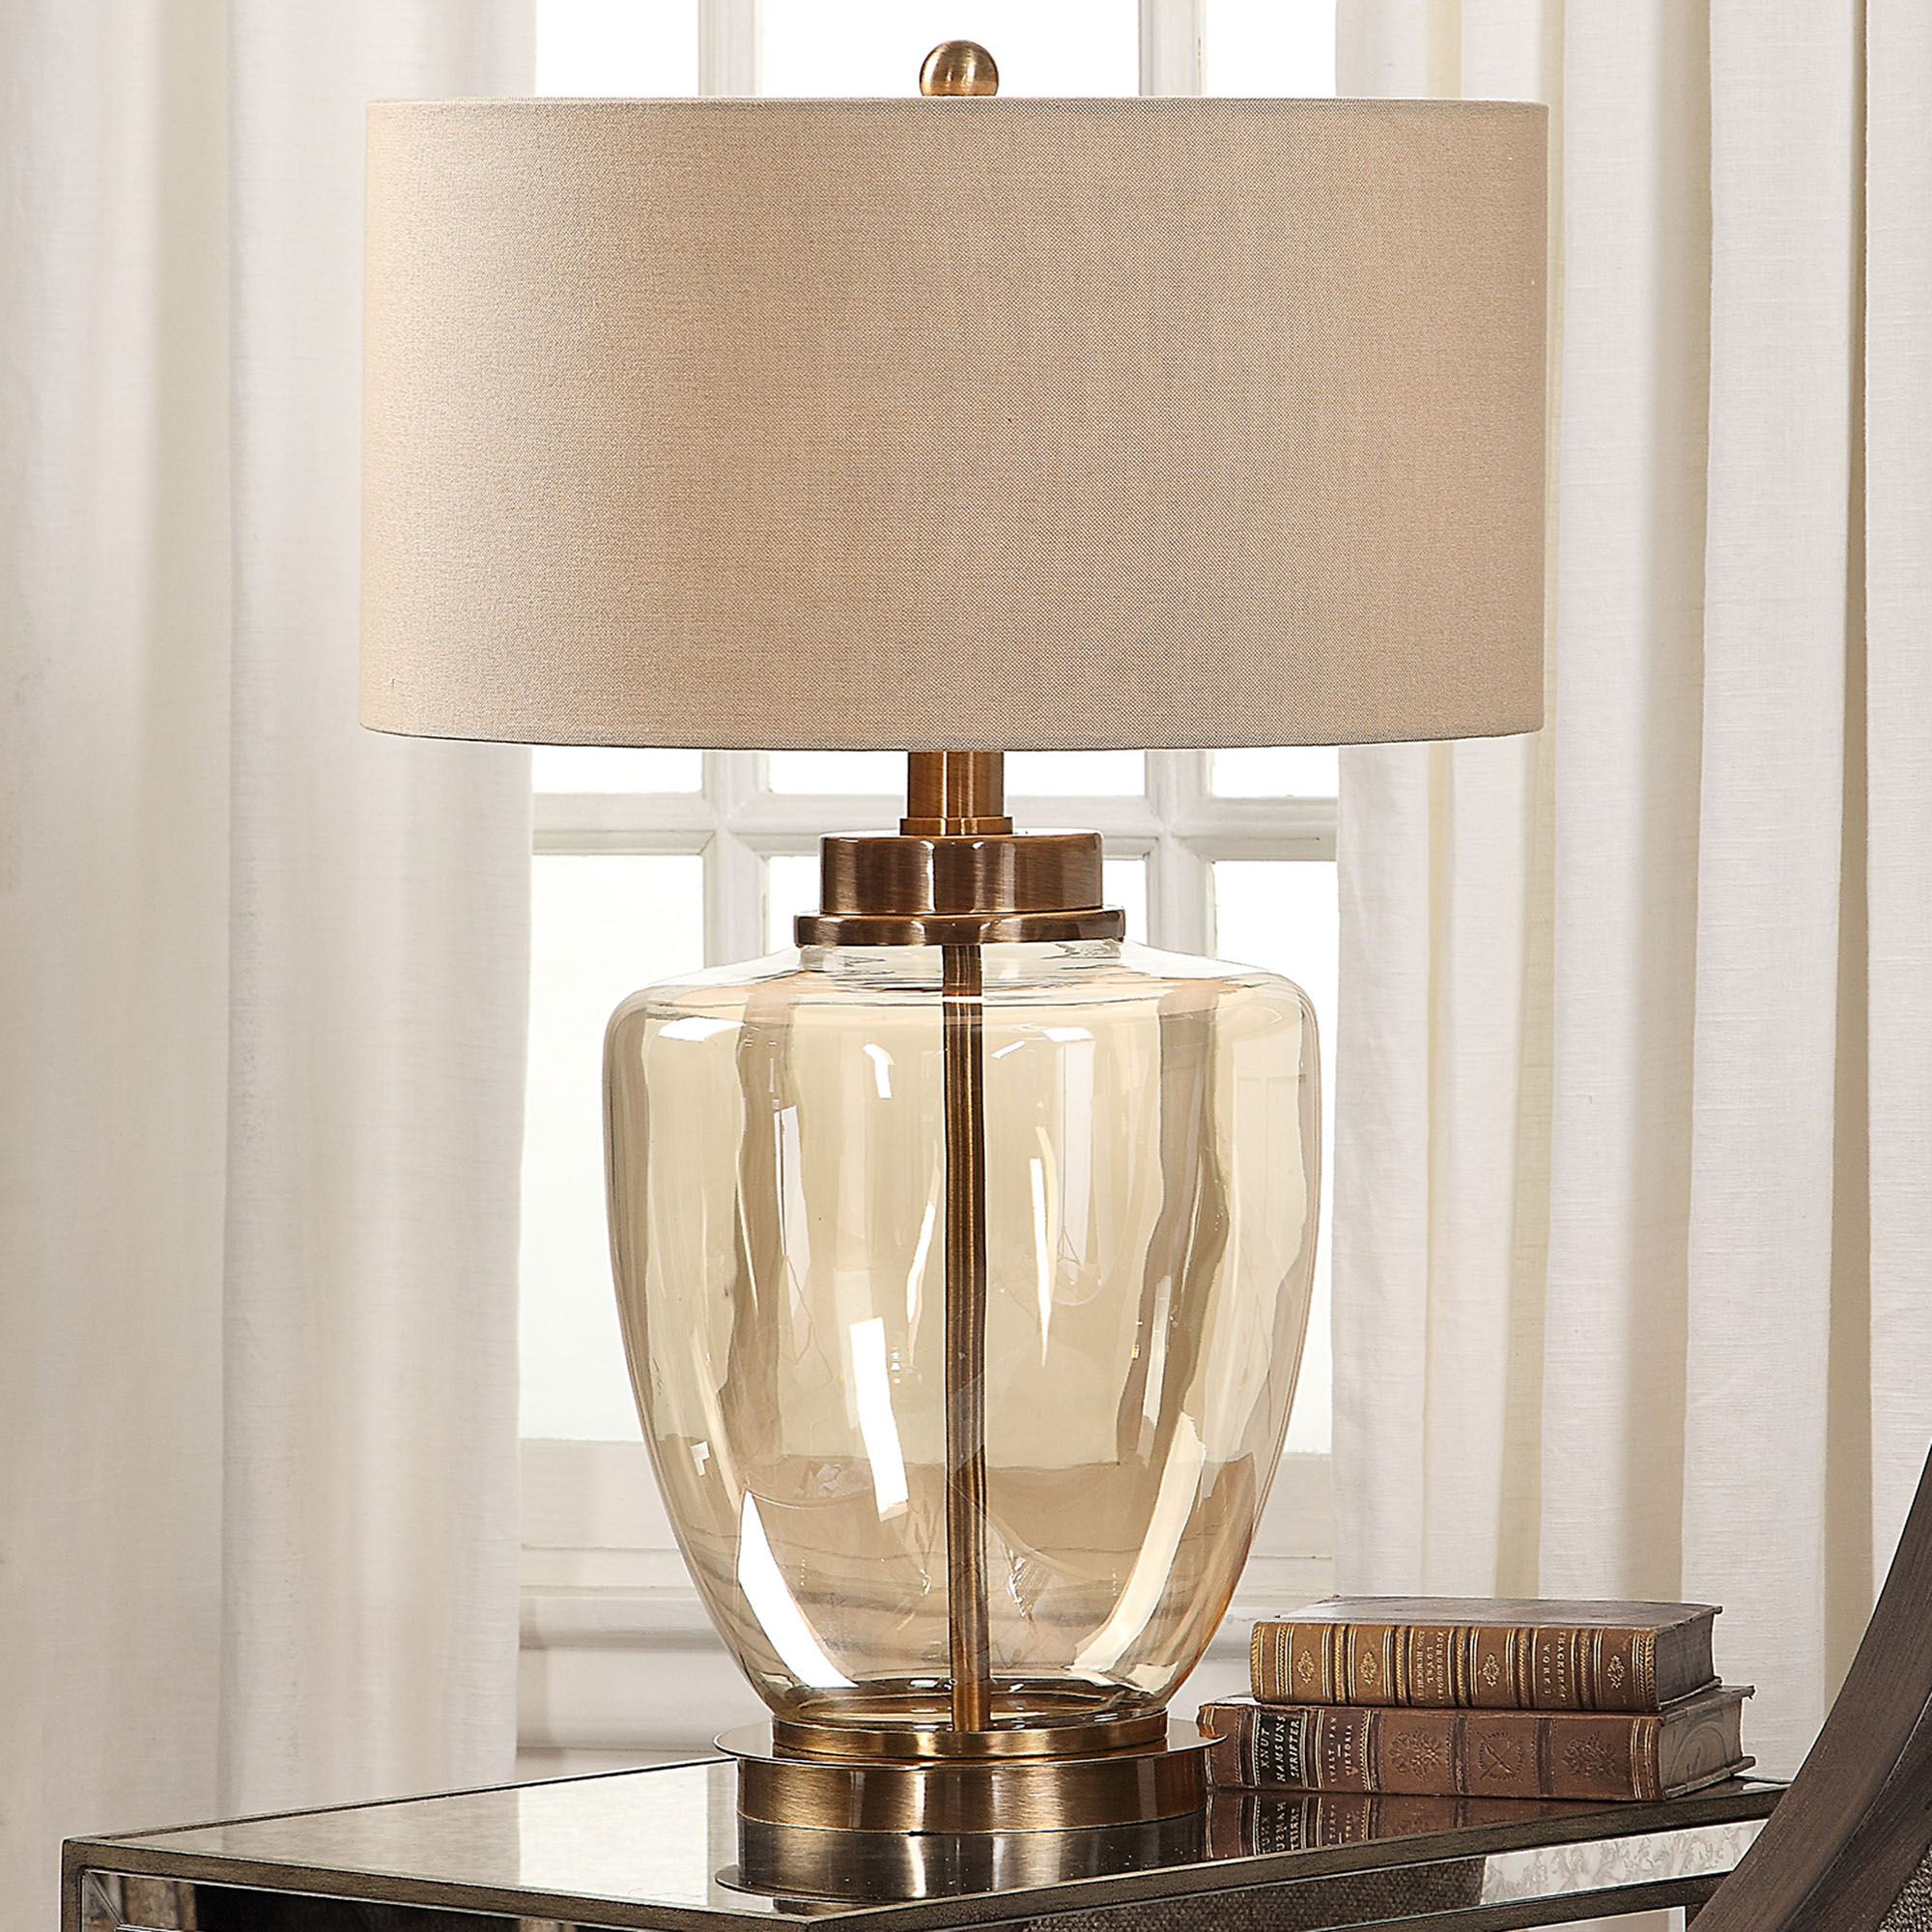 Idona Amber Glass Table Lamp